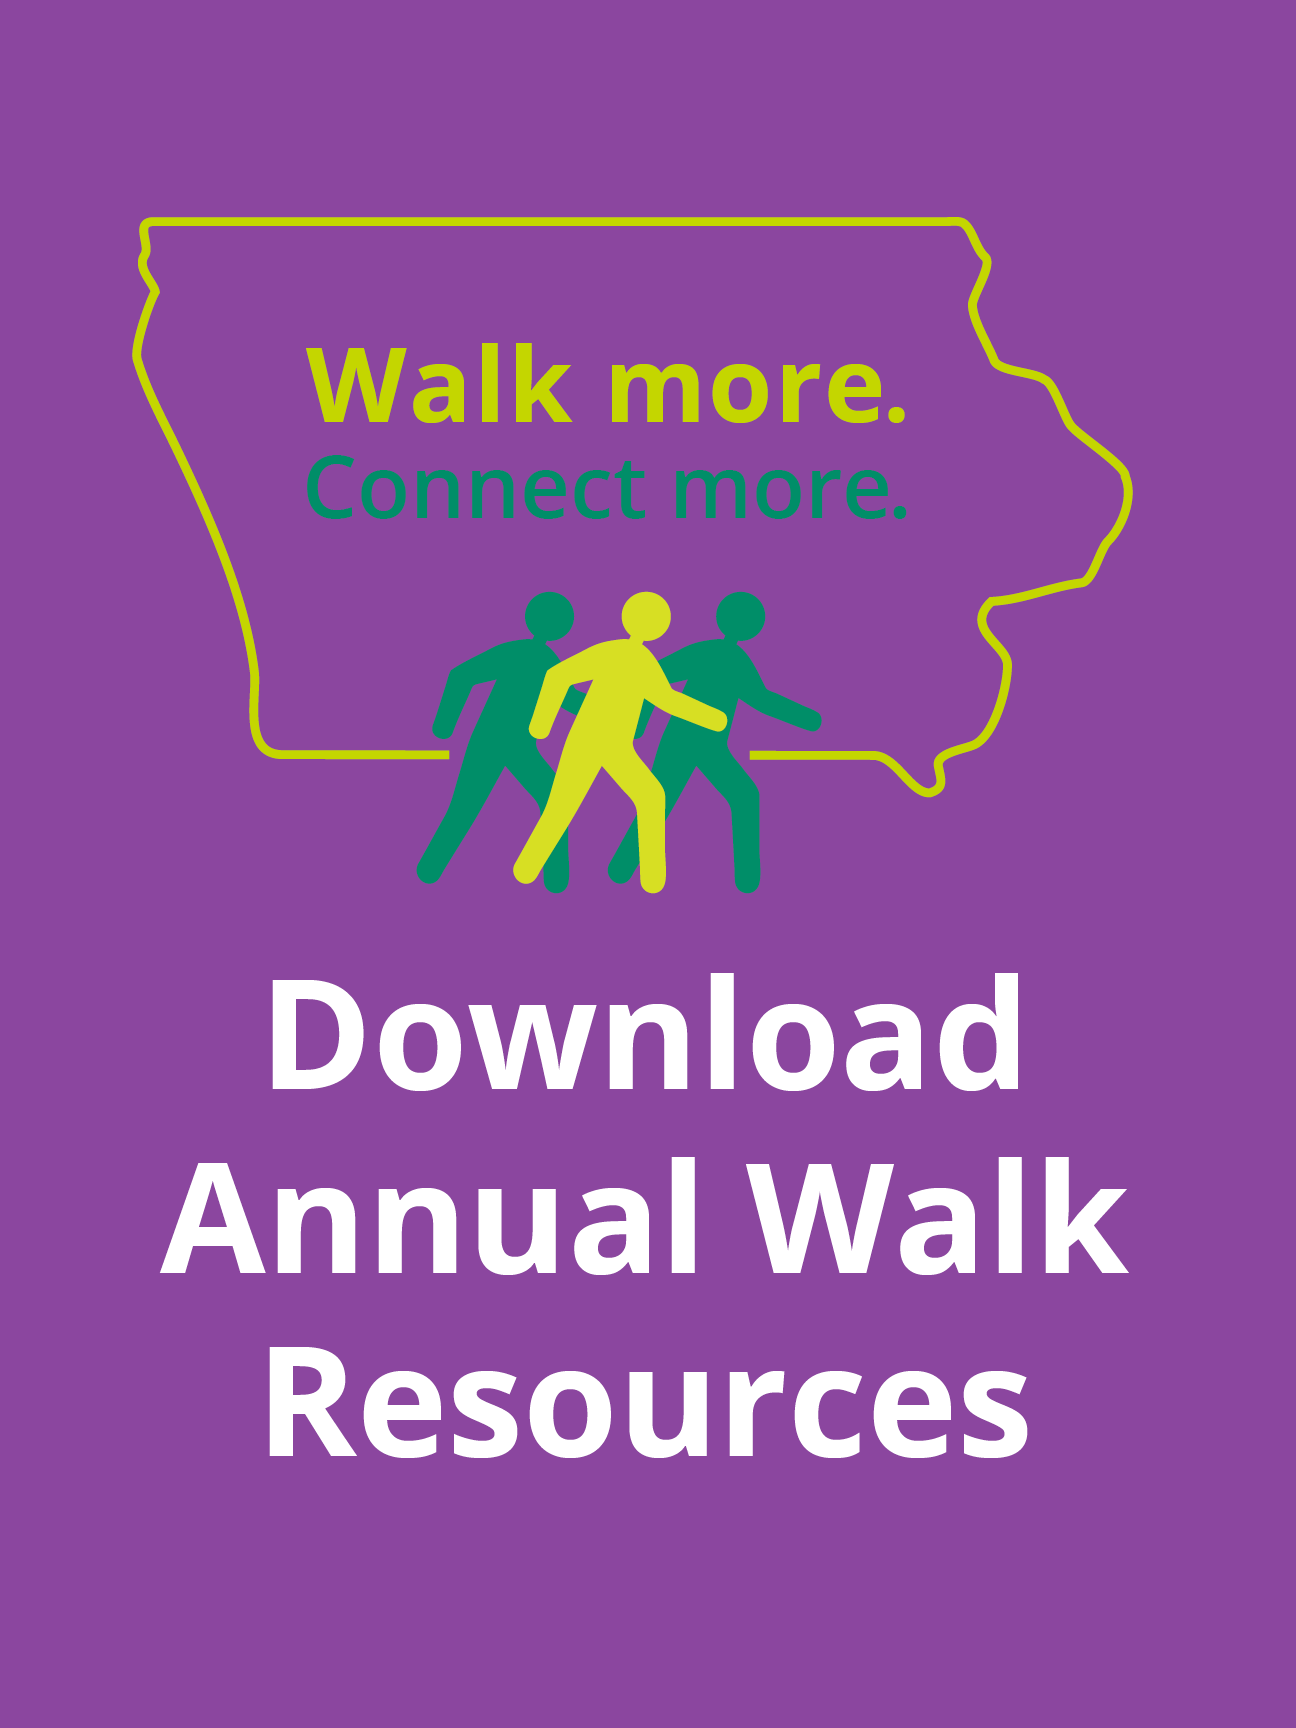 Download Annual Walk Resources